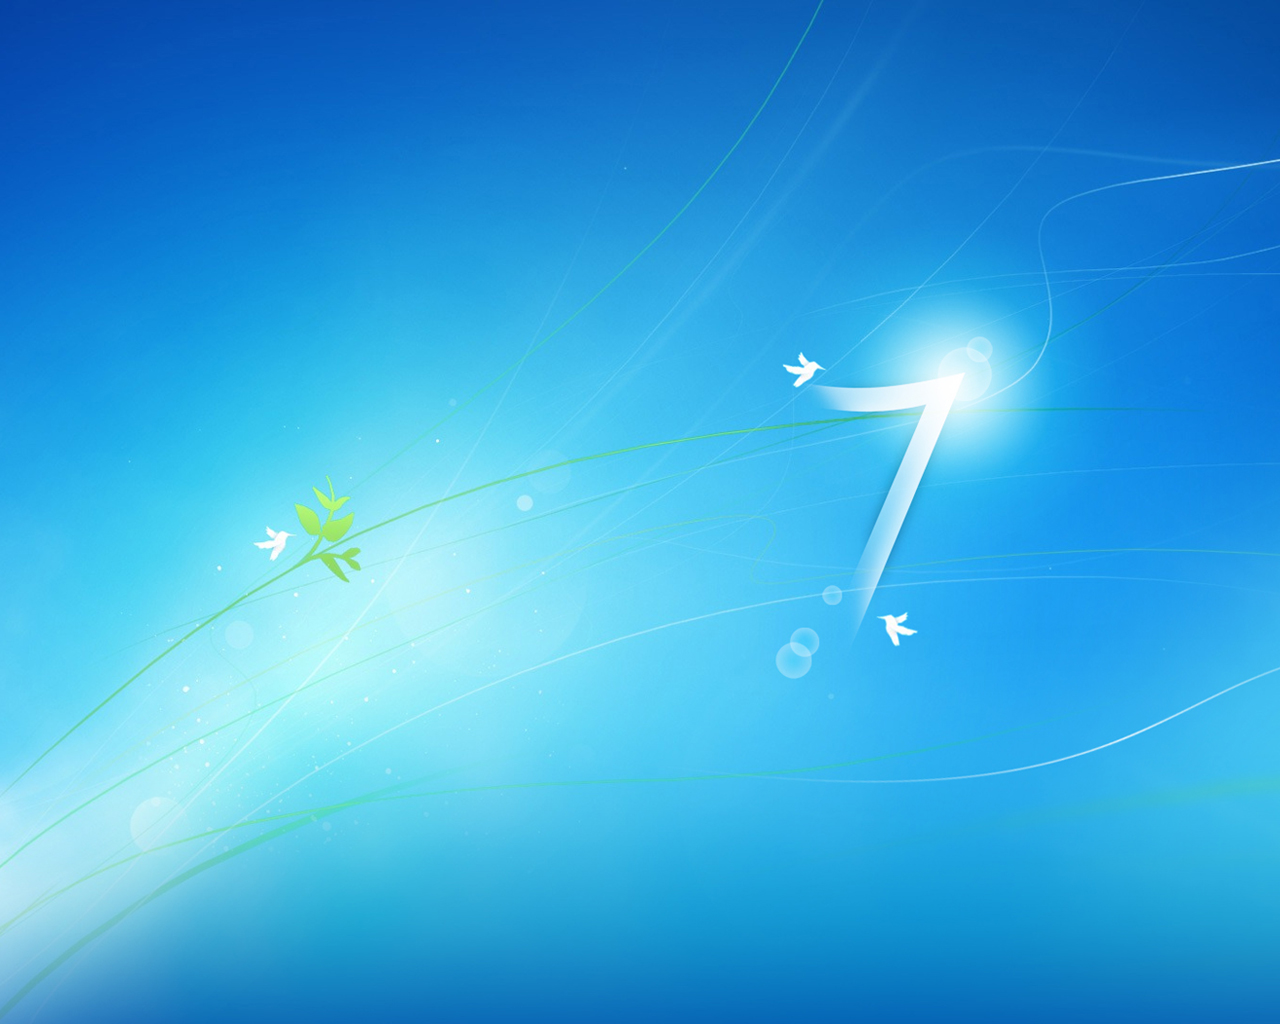 10 Best Windows 7 Wallpapers 2013 MDs Top 10 1280x1024